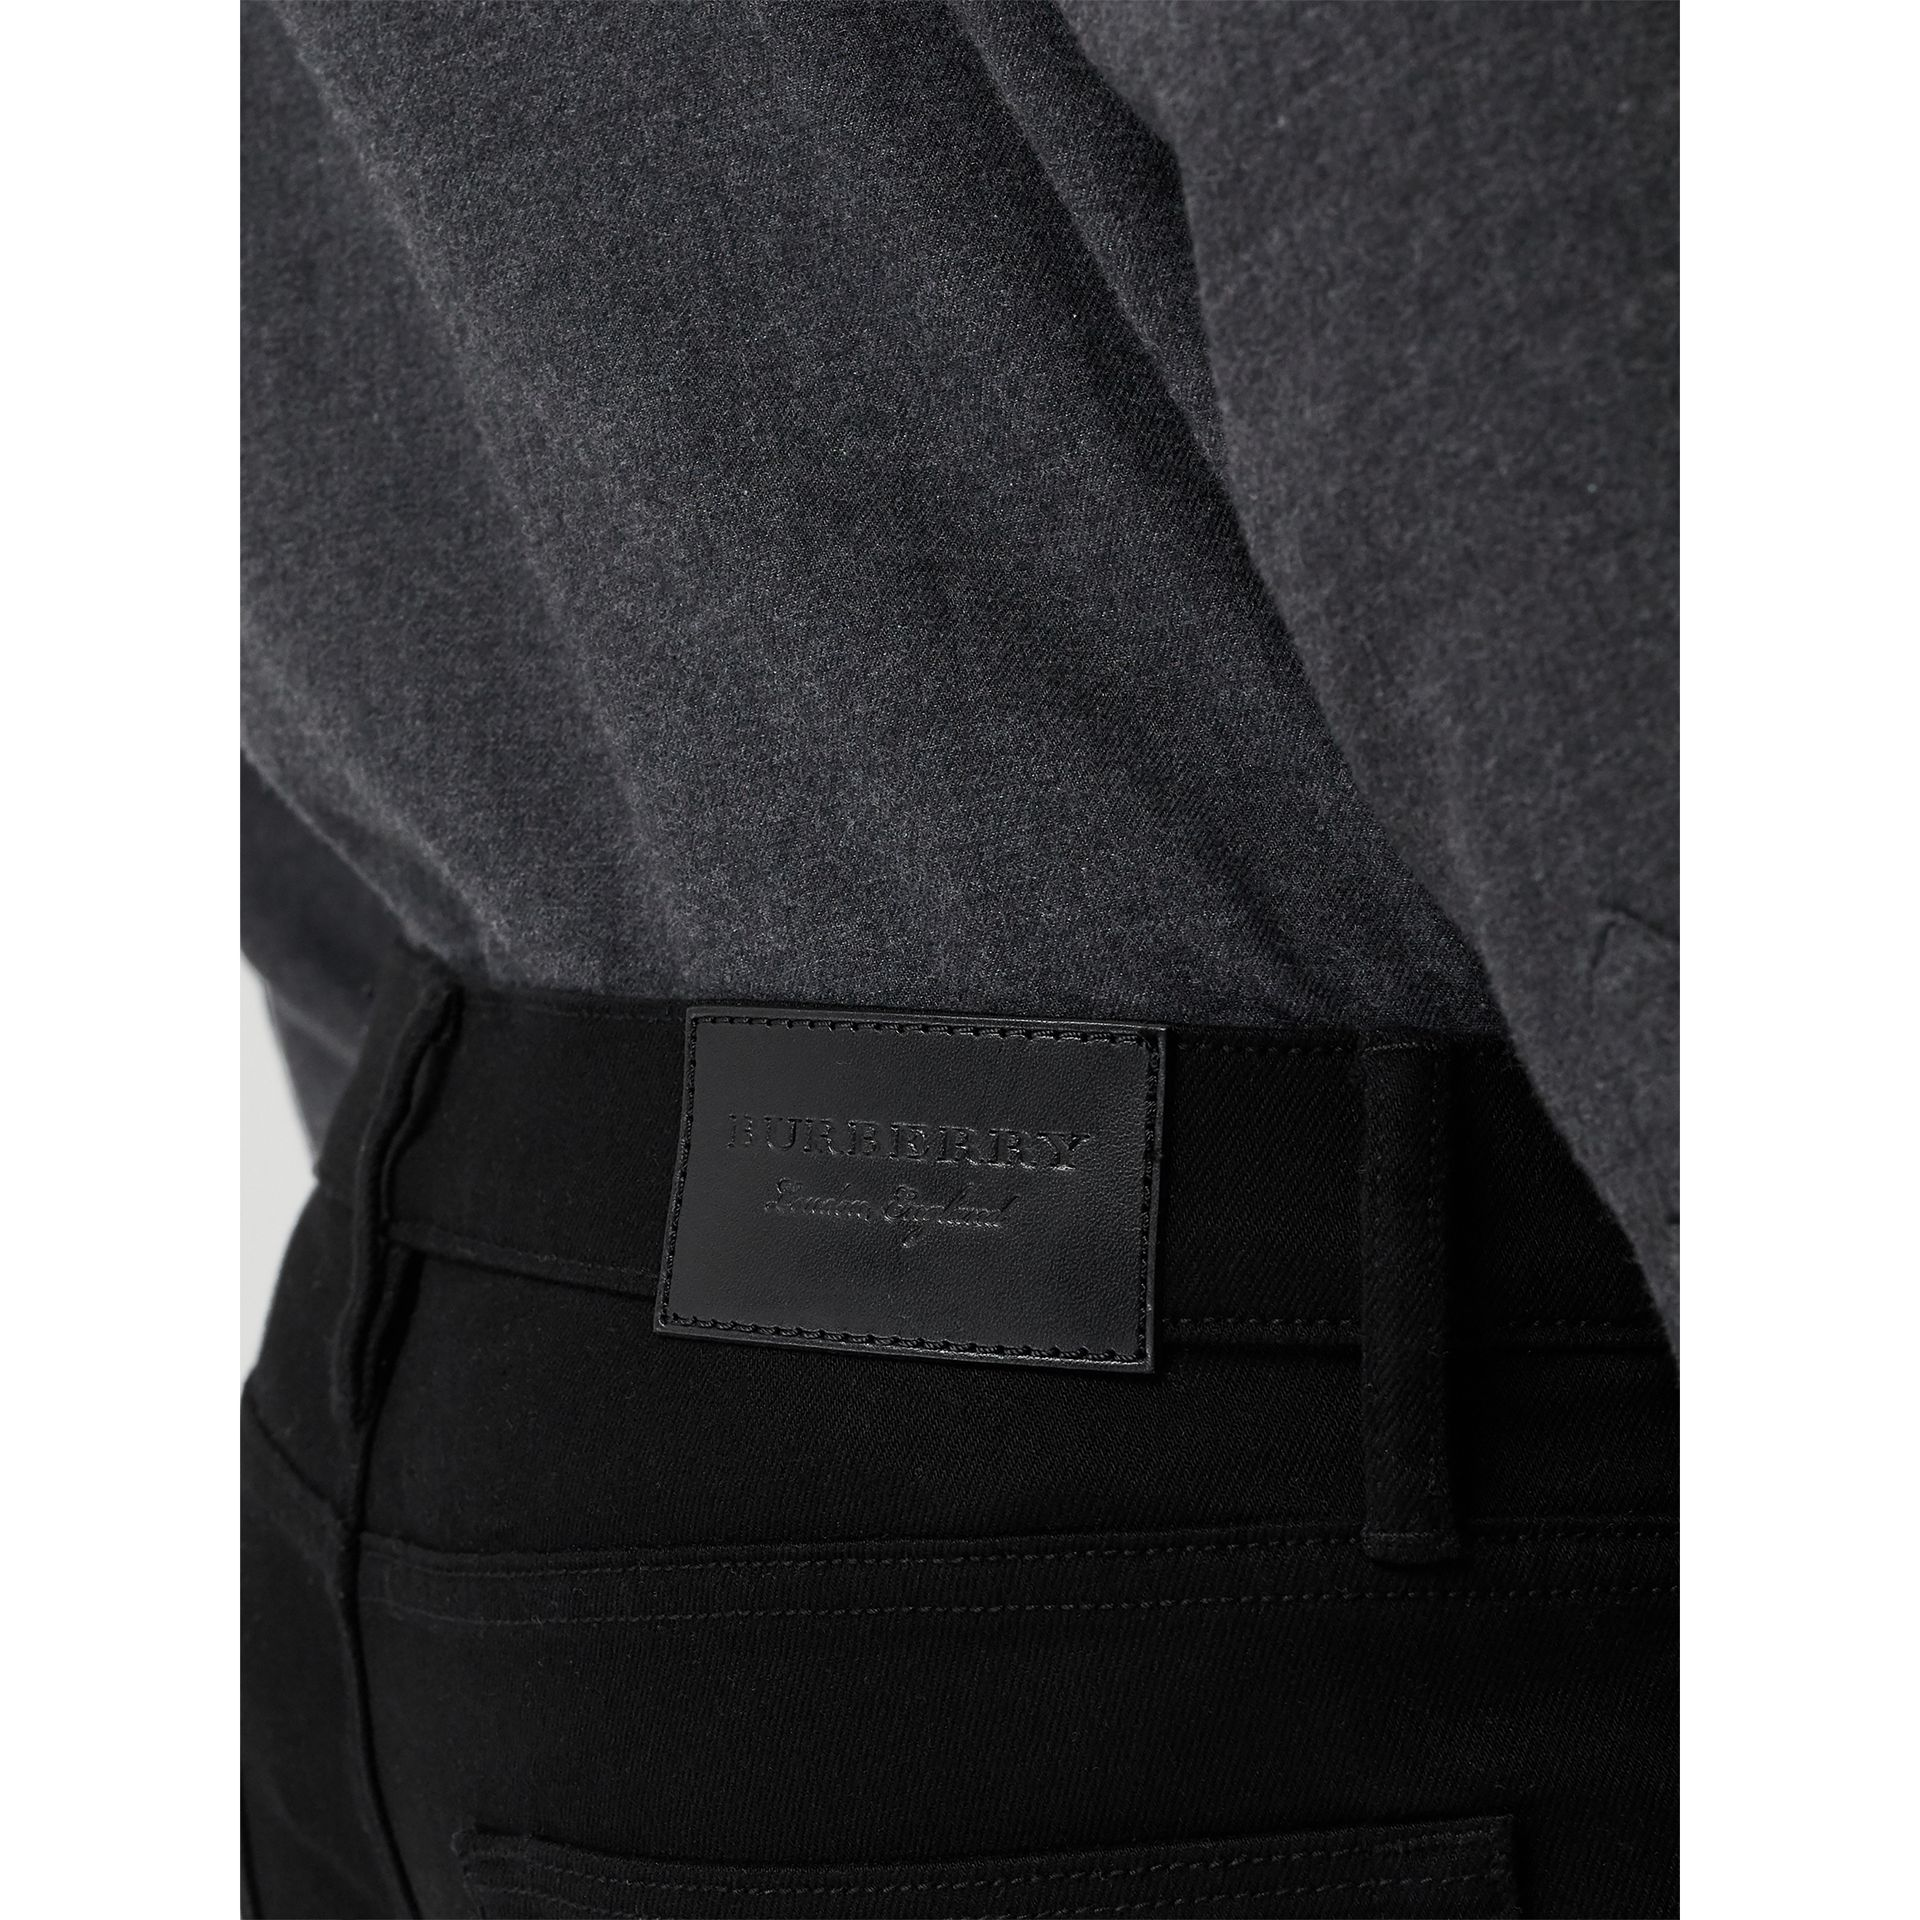 Jean denim extensible de coupe droite (Noir) - Homme | Burberry - photo de la galerie 1